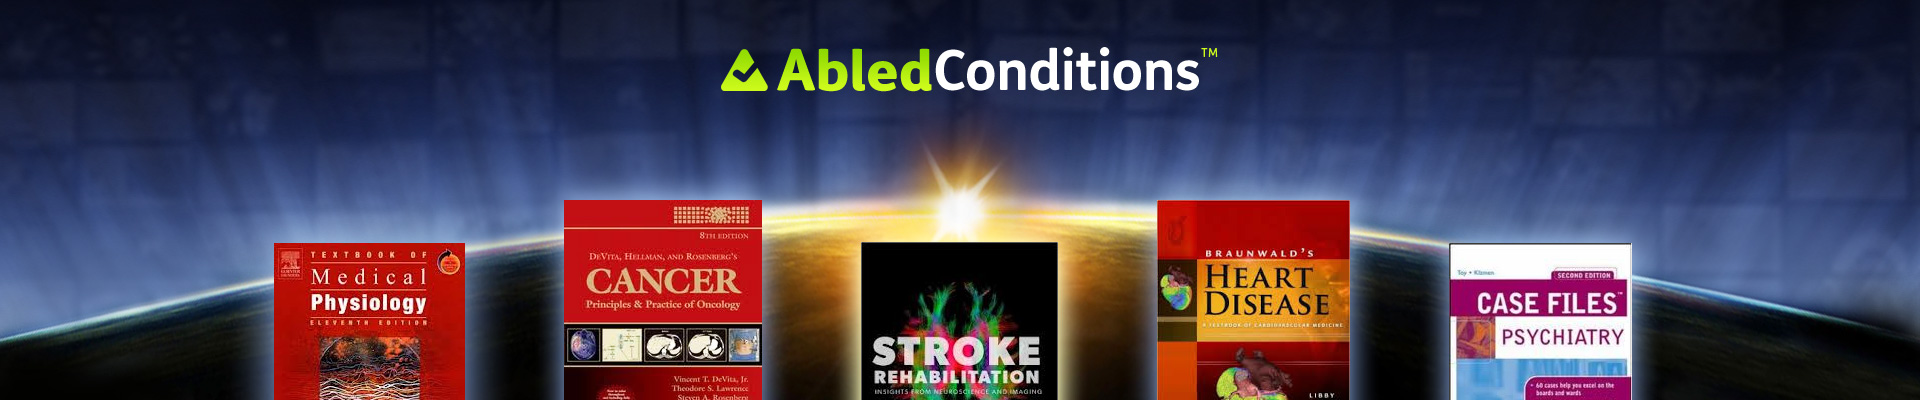 AbledConditions category banner shows the covers of medical books on heart disease, stroke and other conditions agains the backdrop of the sun rising over the edge of the Earth